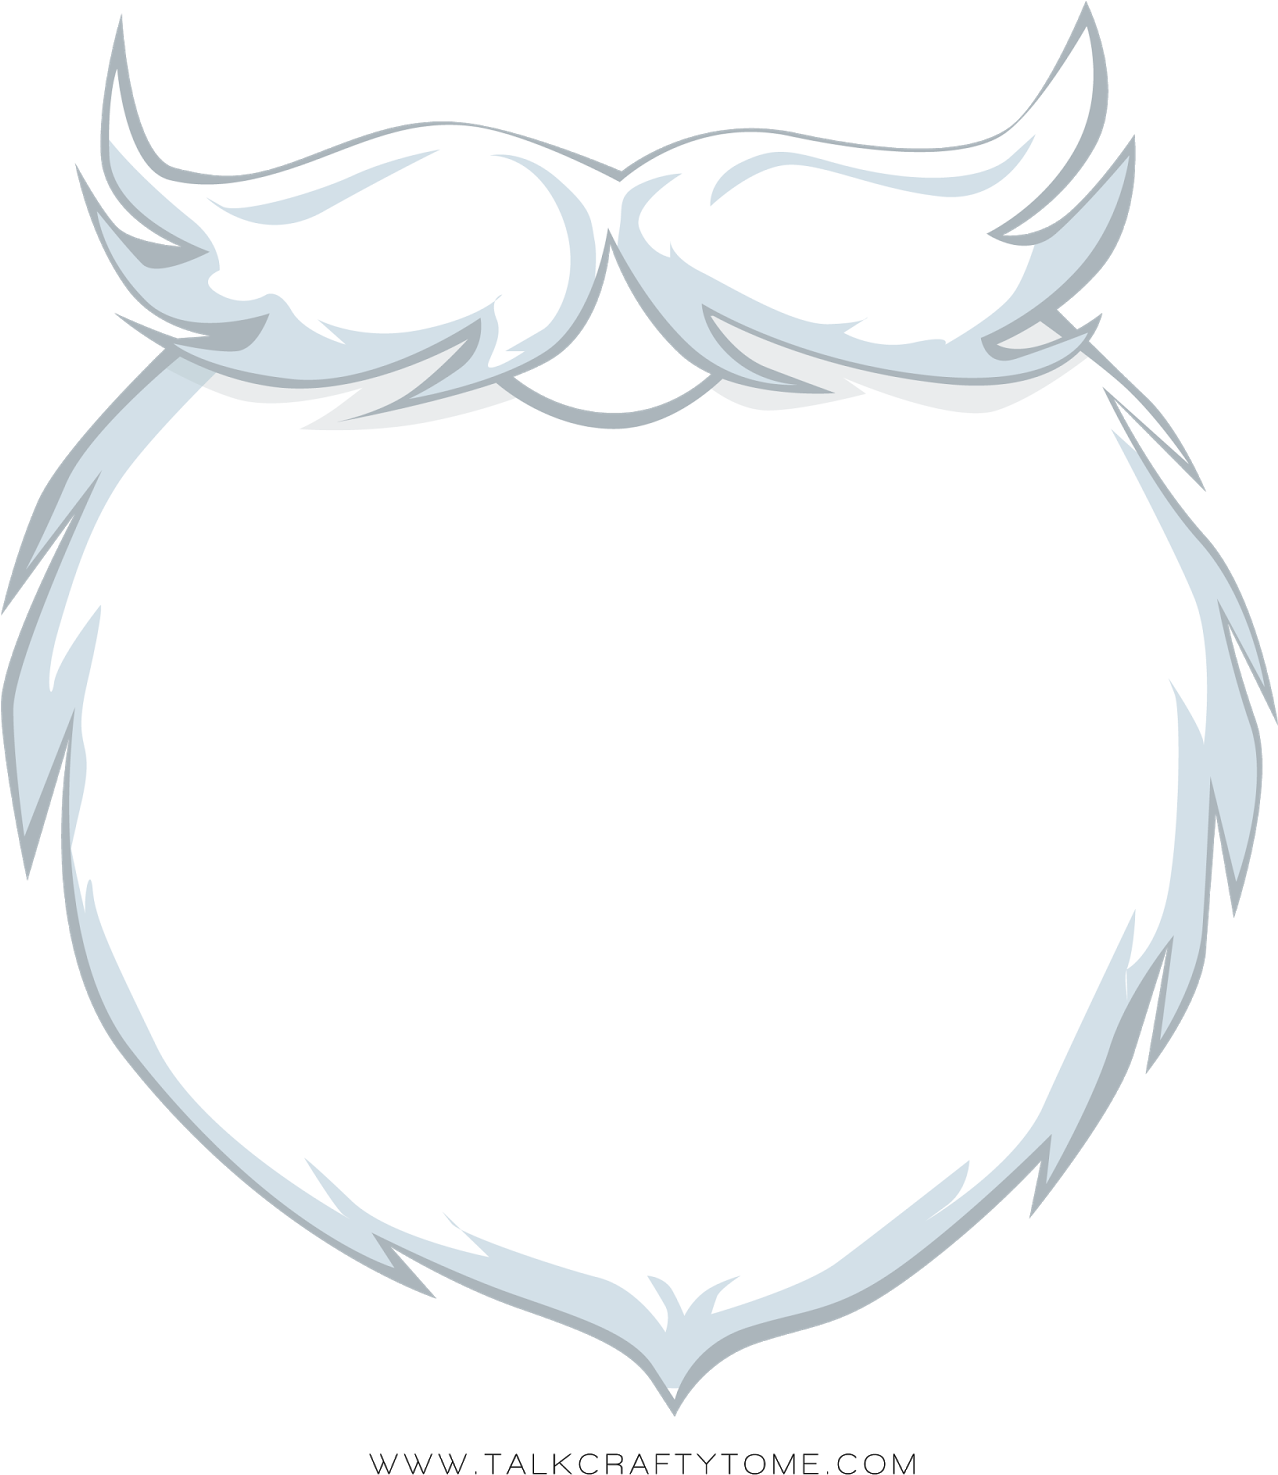 picture royalty free library Santa beard clipart. Hd png transparent no